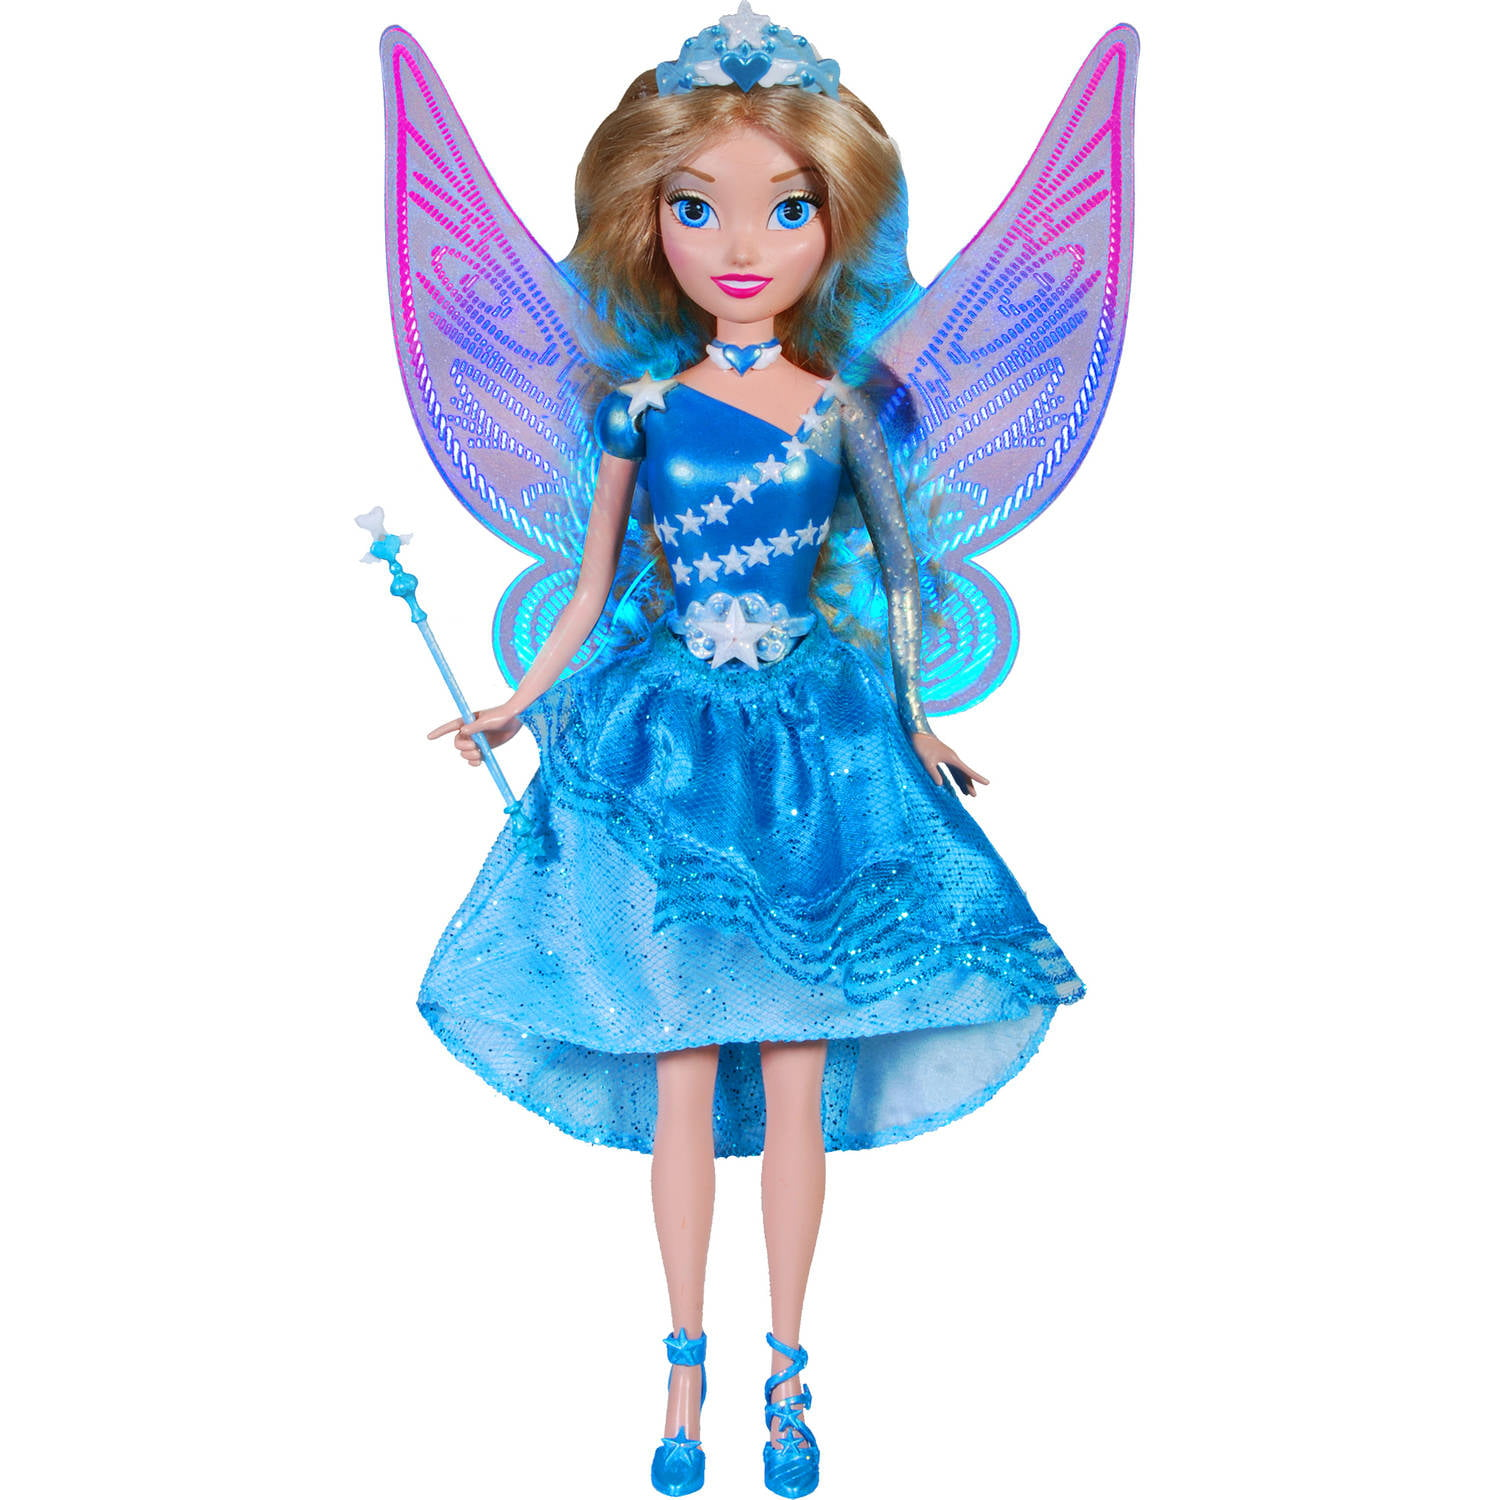 Glimmer Glow Twinkle the Real Tooth Fairy by Hooray Toys